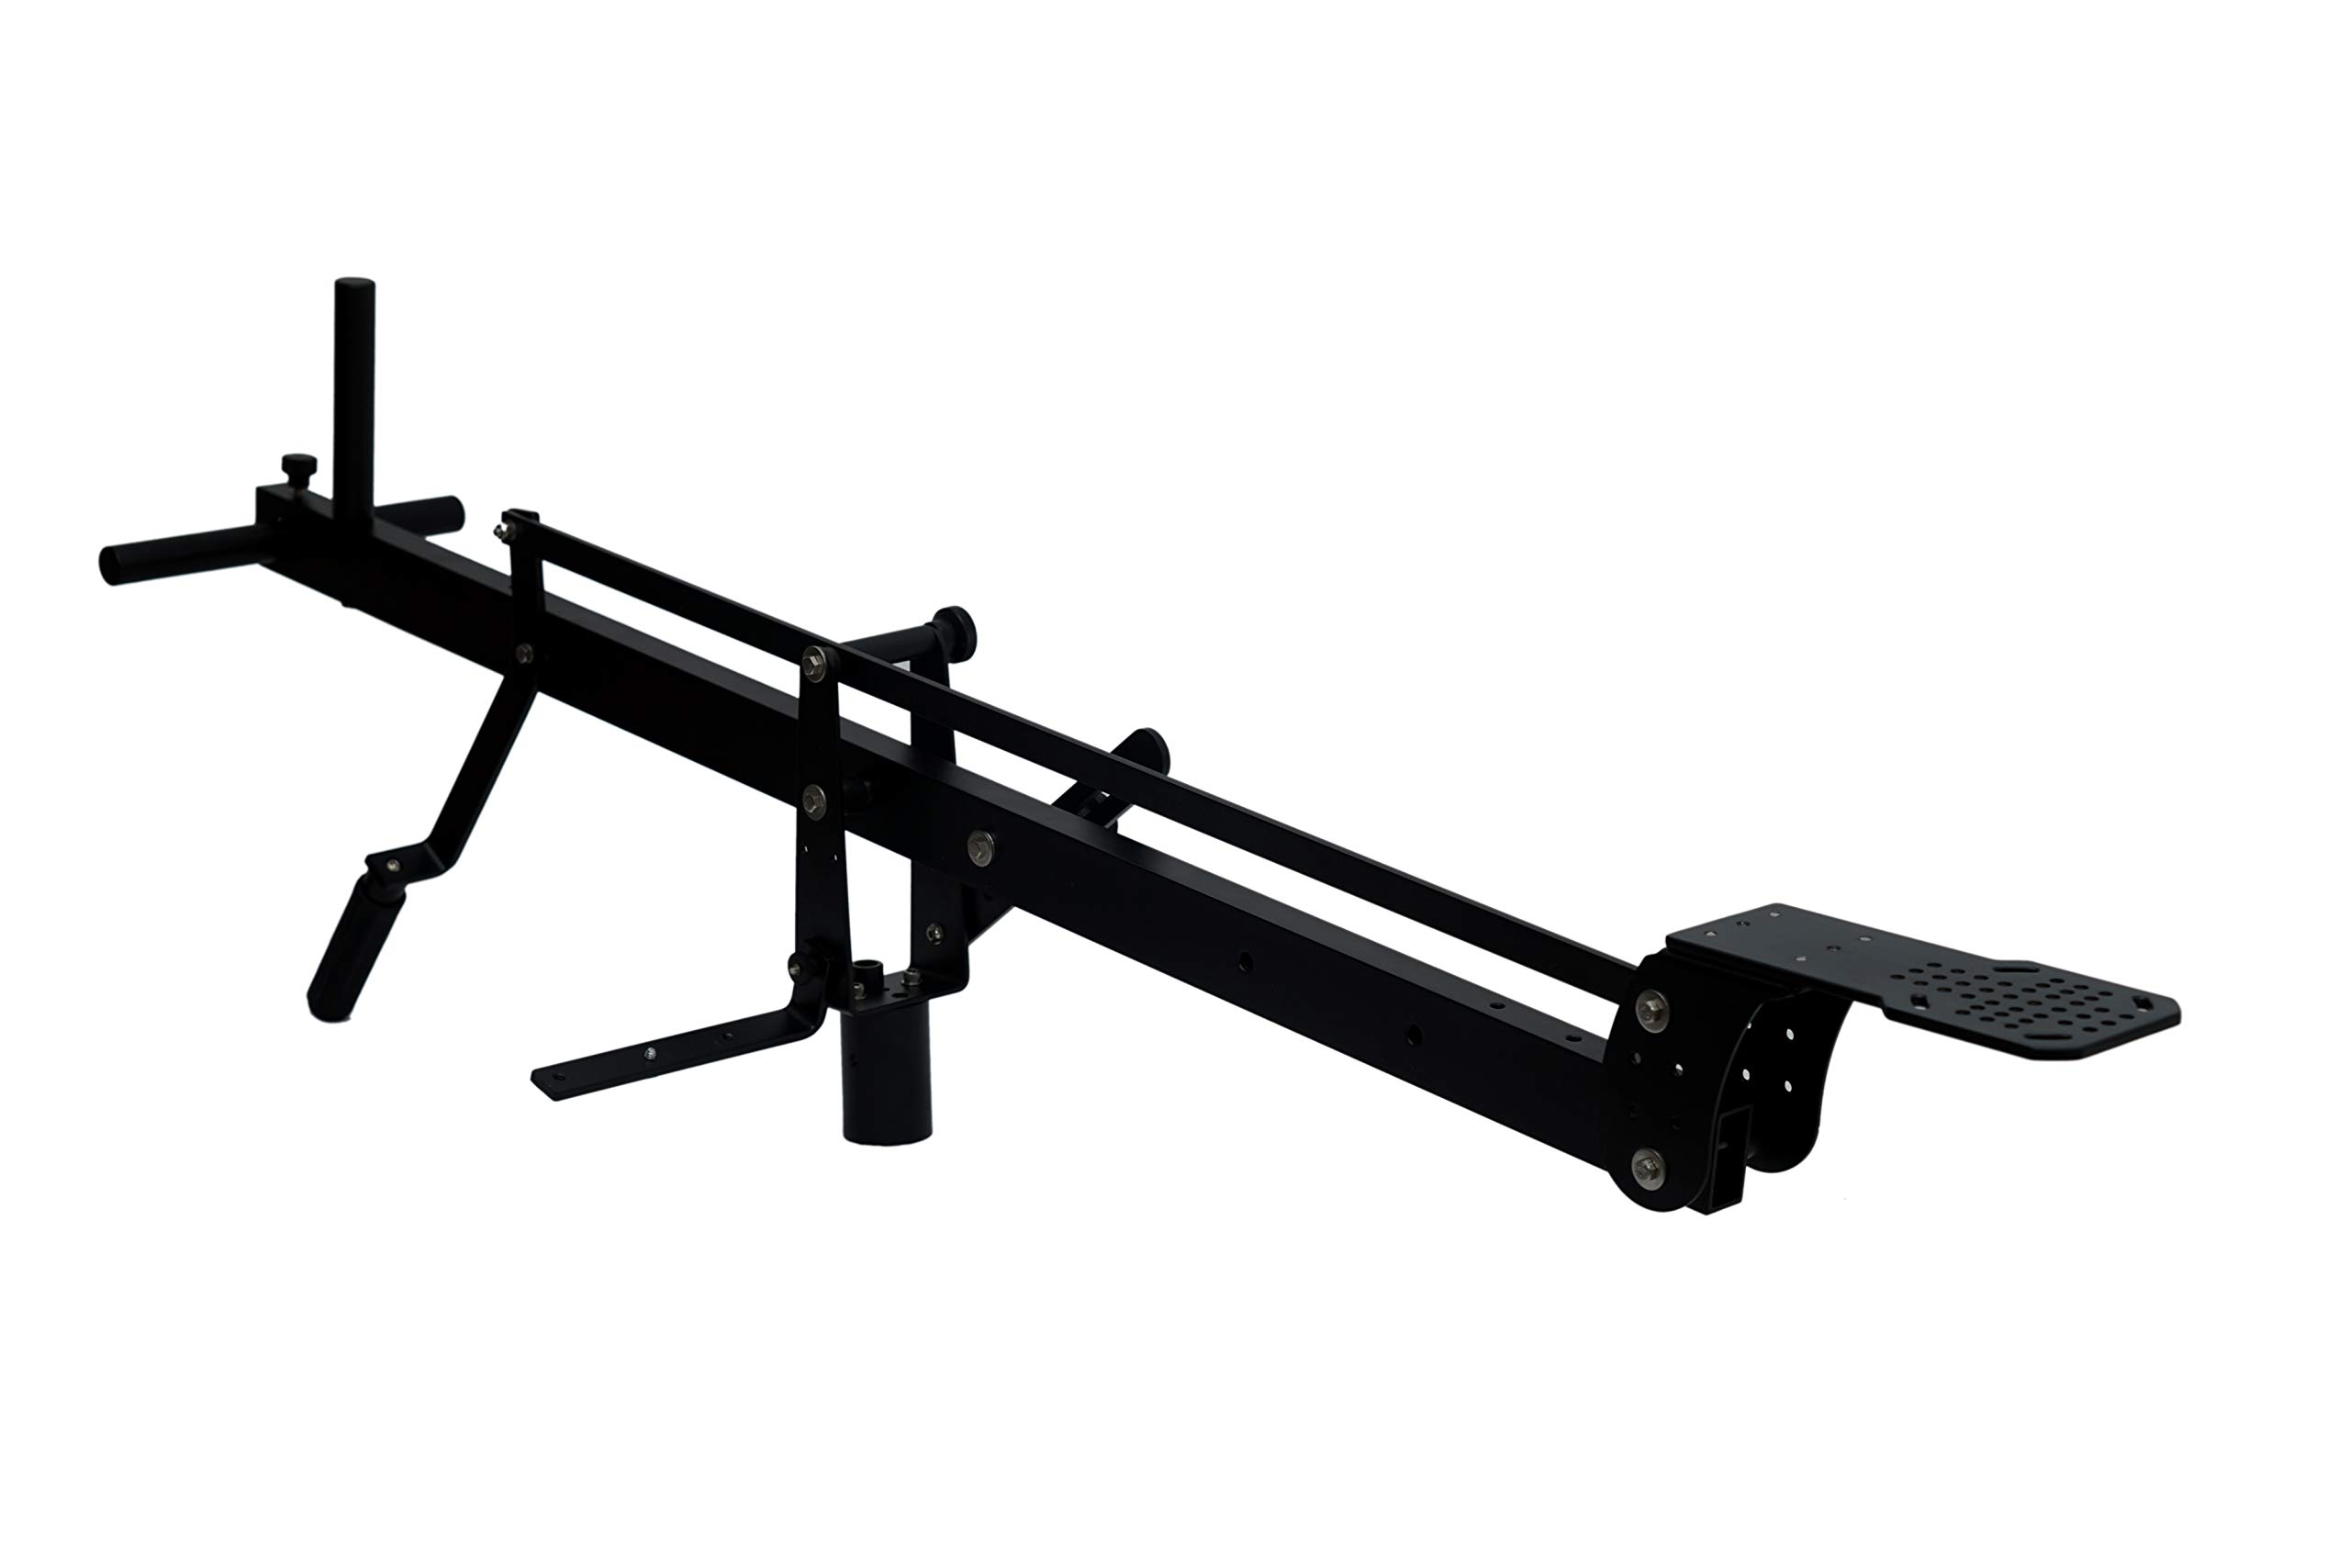 Camgear DSLR Video Camera Crane Jib DSLR Tilt with 4 Feet Length | Heavy Duty Yet Lightweight, Best Travel/Indoor/Outdoor Aluminum Crane with LCD Arm and Bag by CamGear